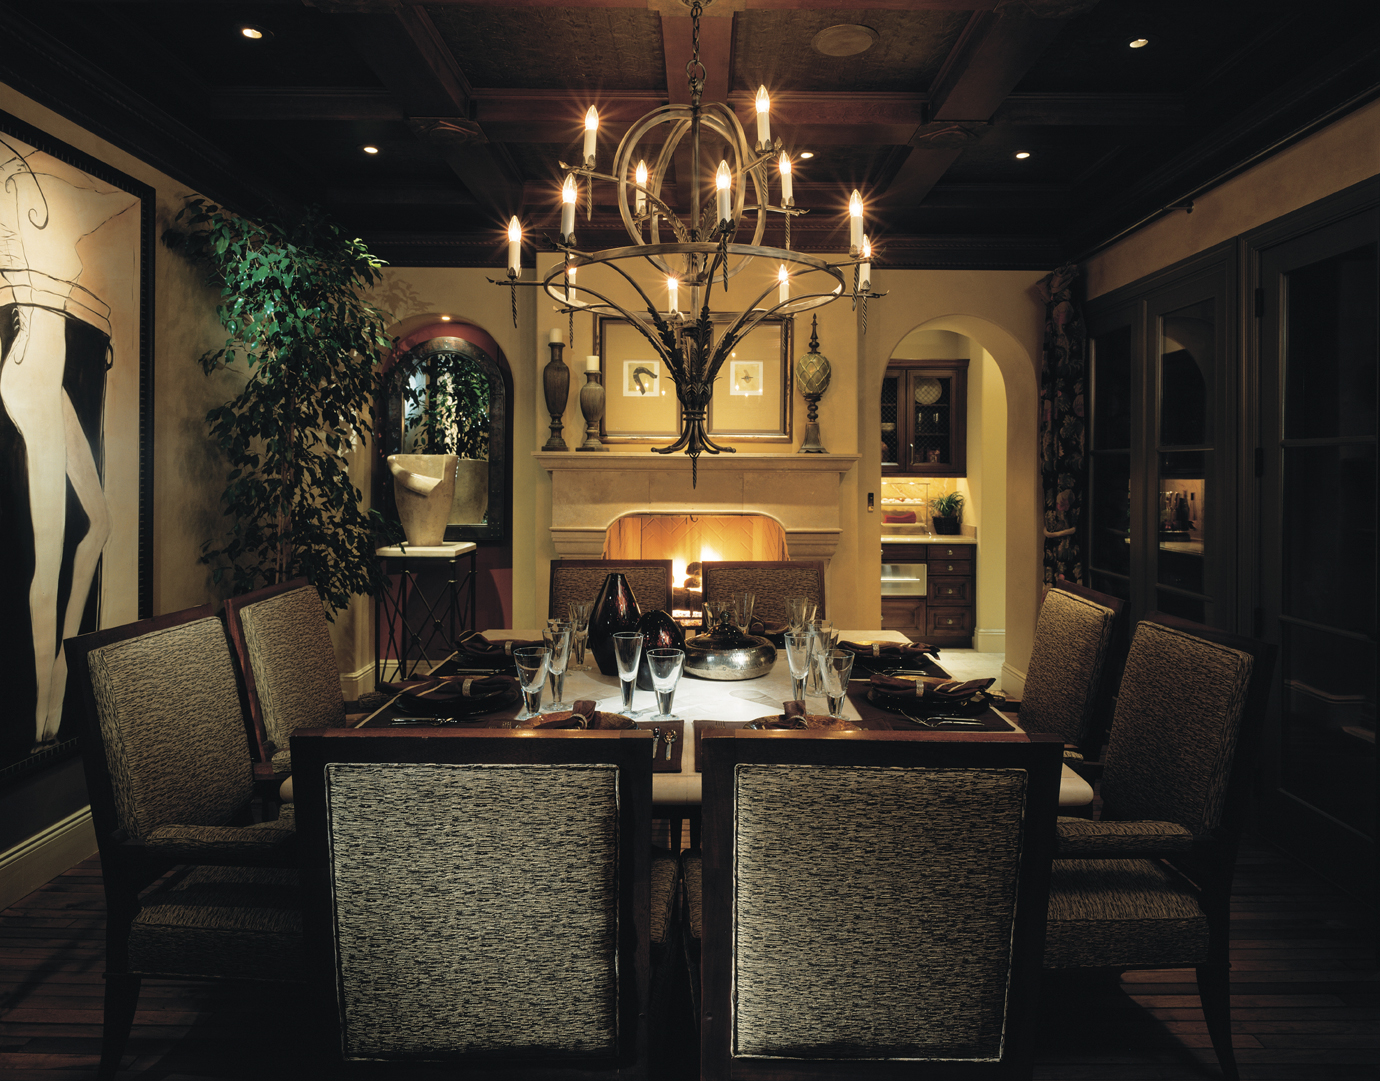 Home Interior Designs The Options For Dining Room Lighting